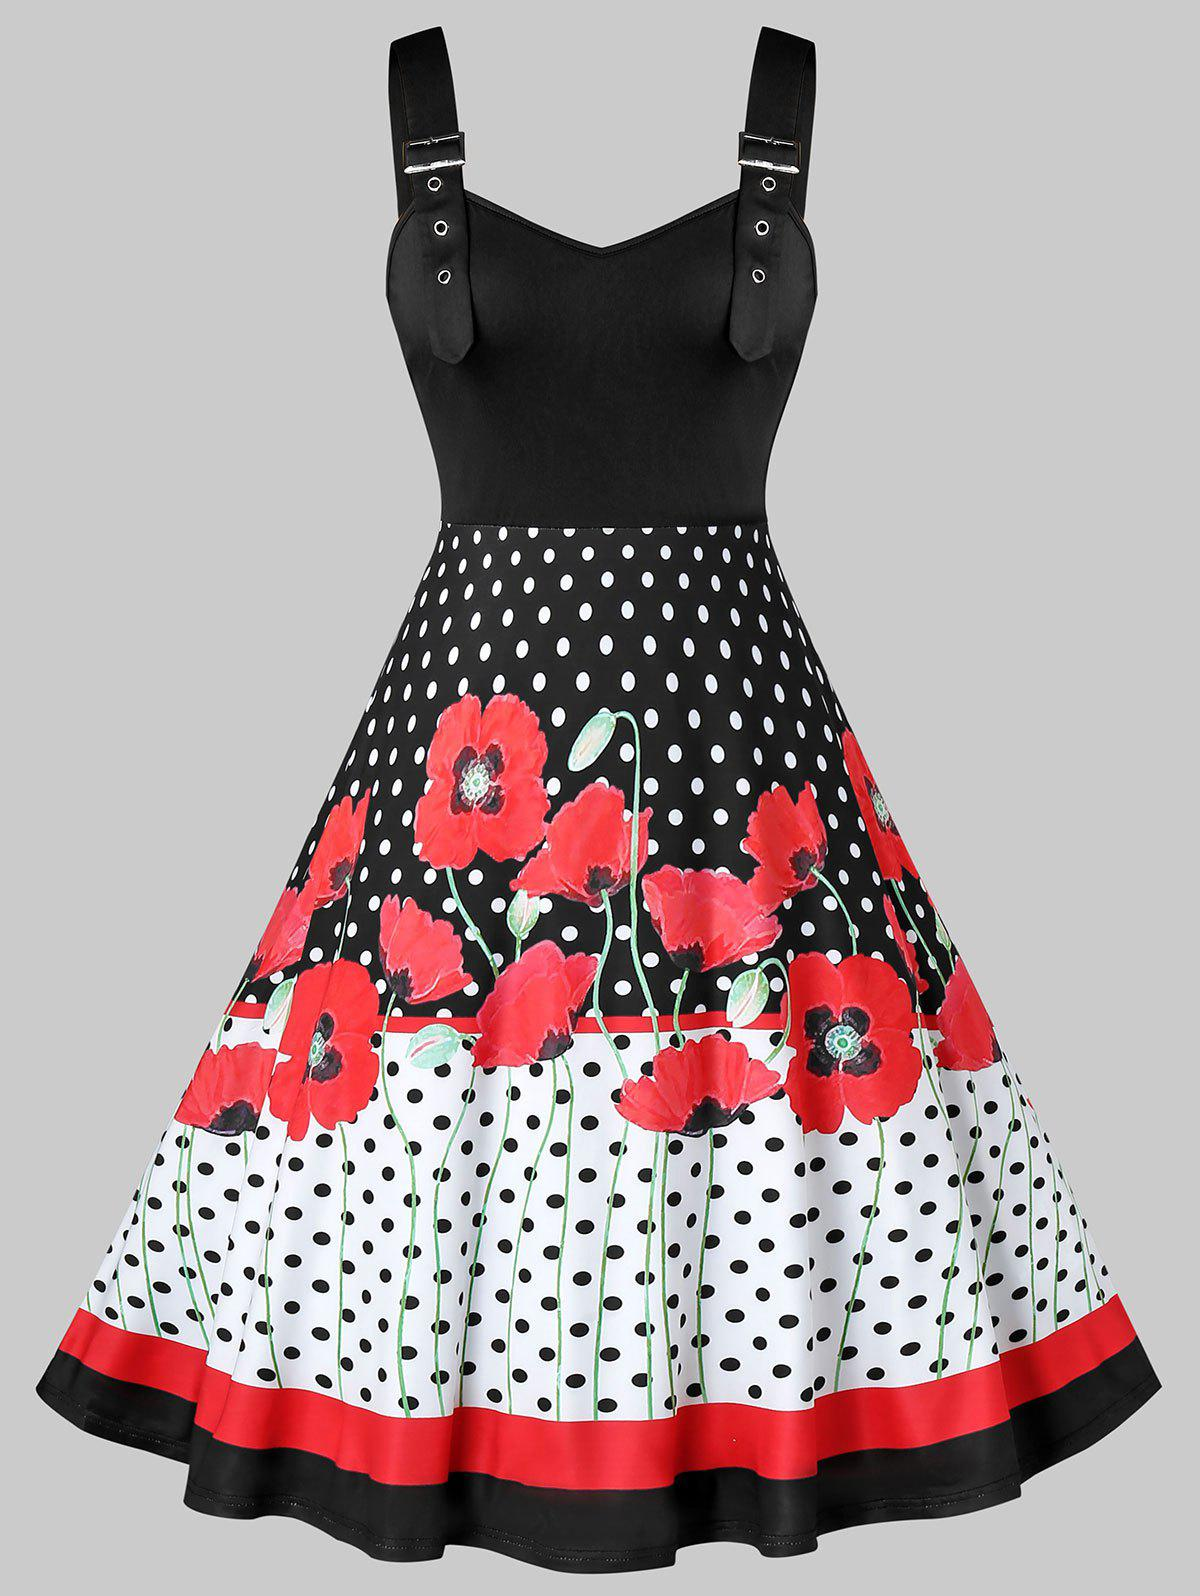 Plus Size Flower Polka Dot Buckle Strap Flare Retro Dress - multicolor 5X